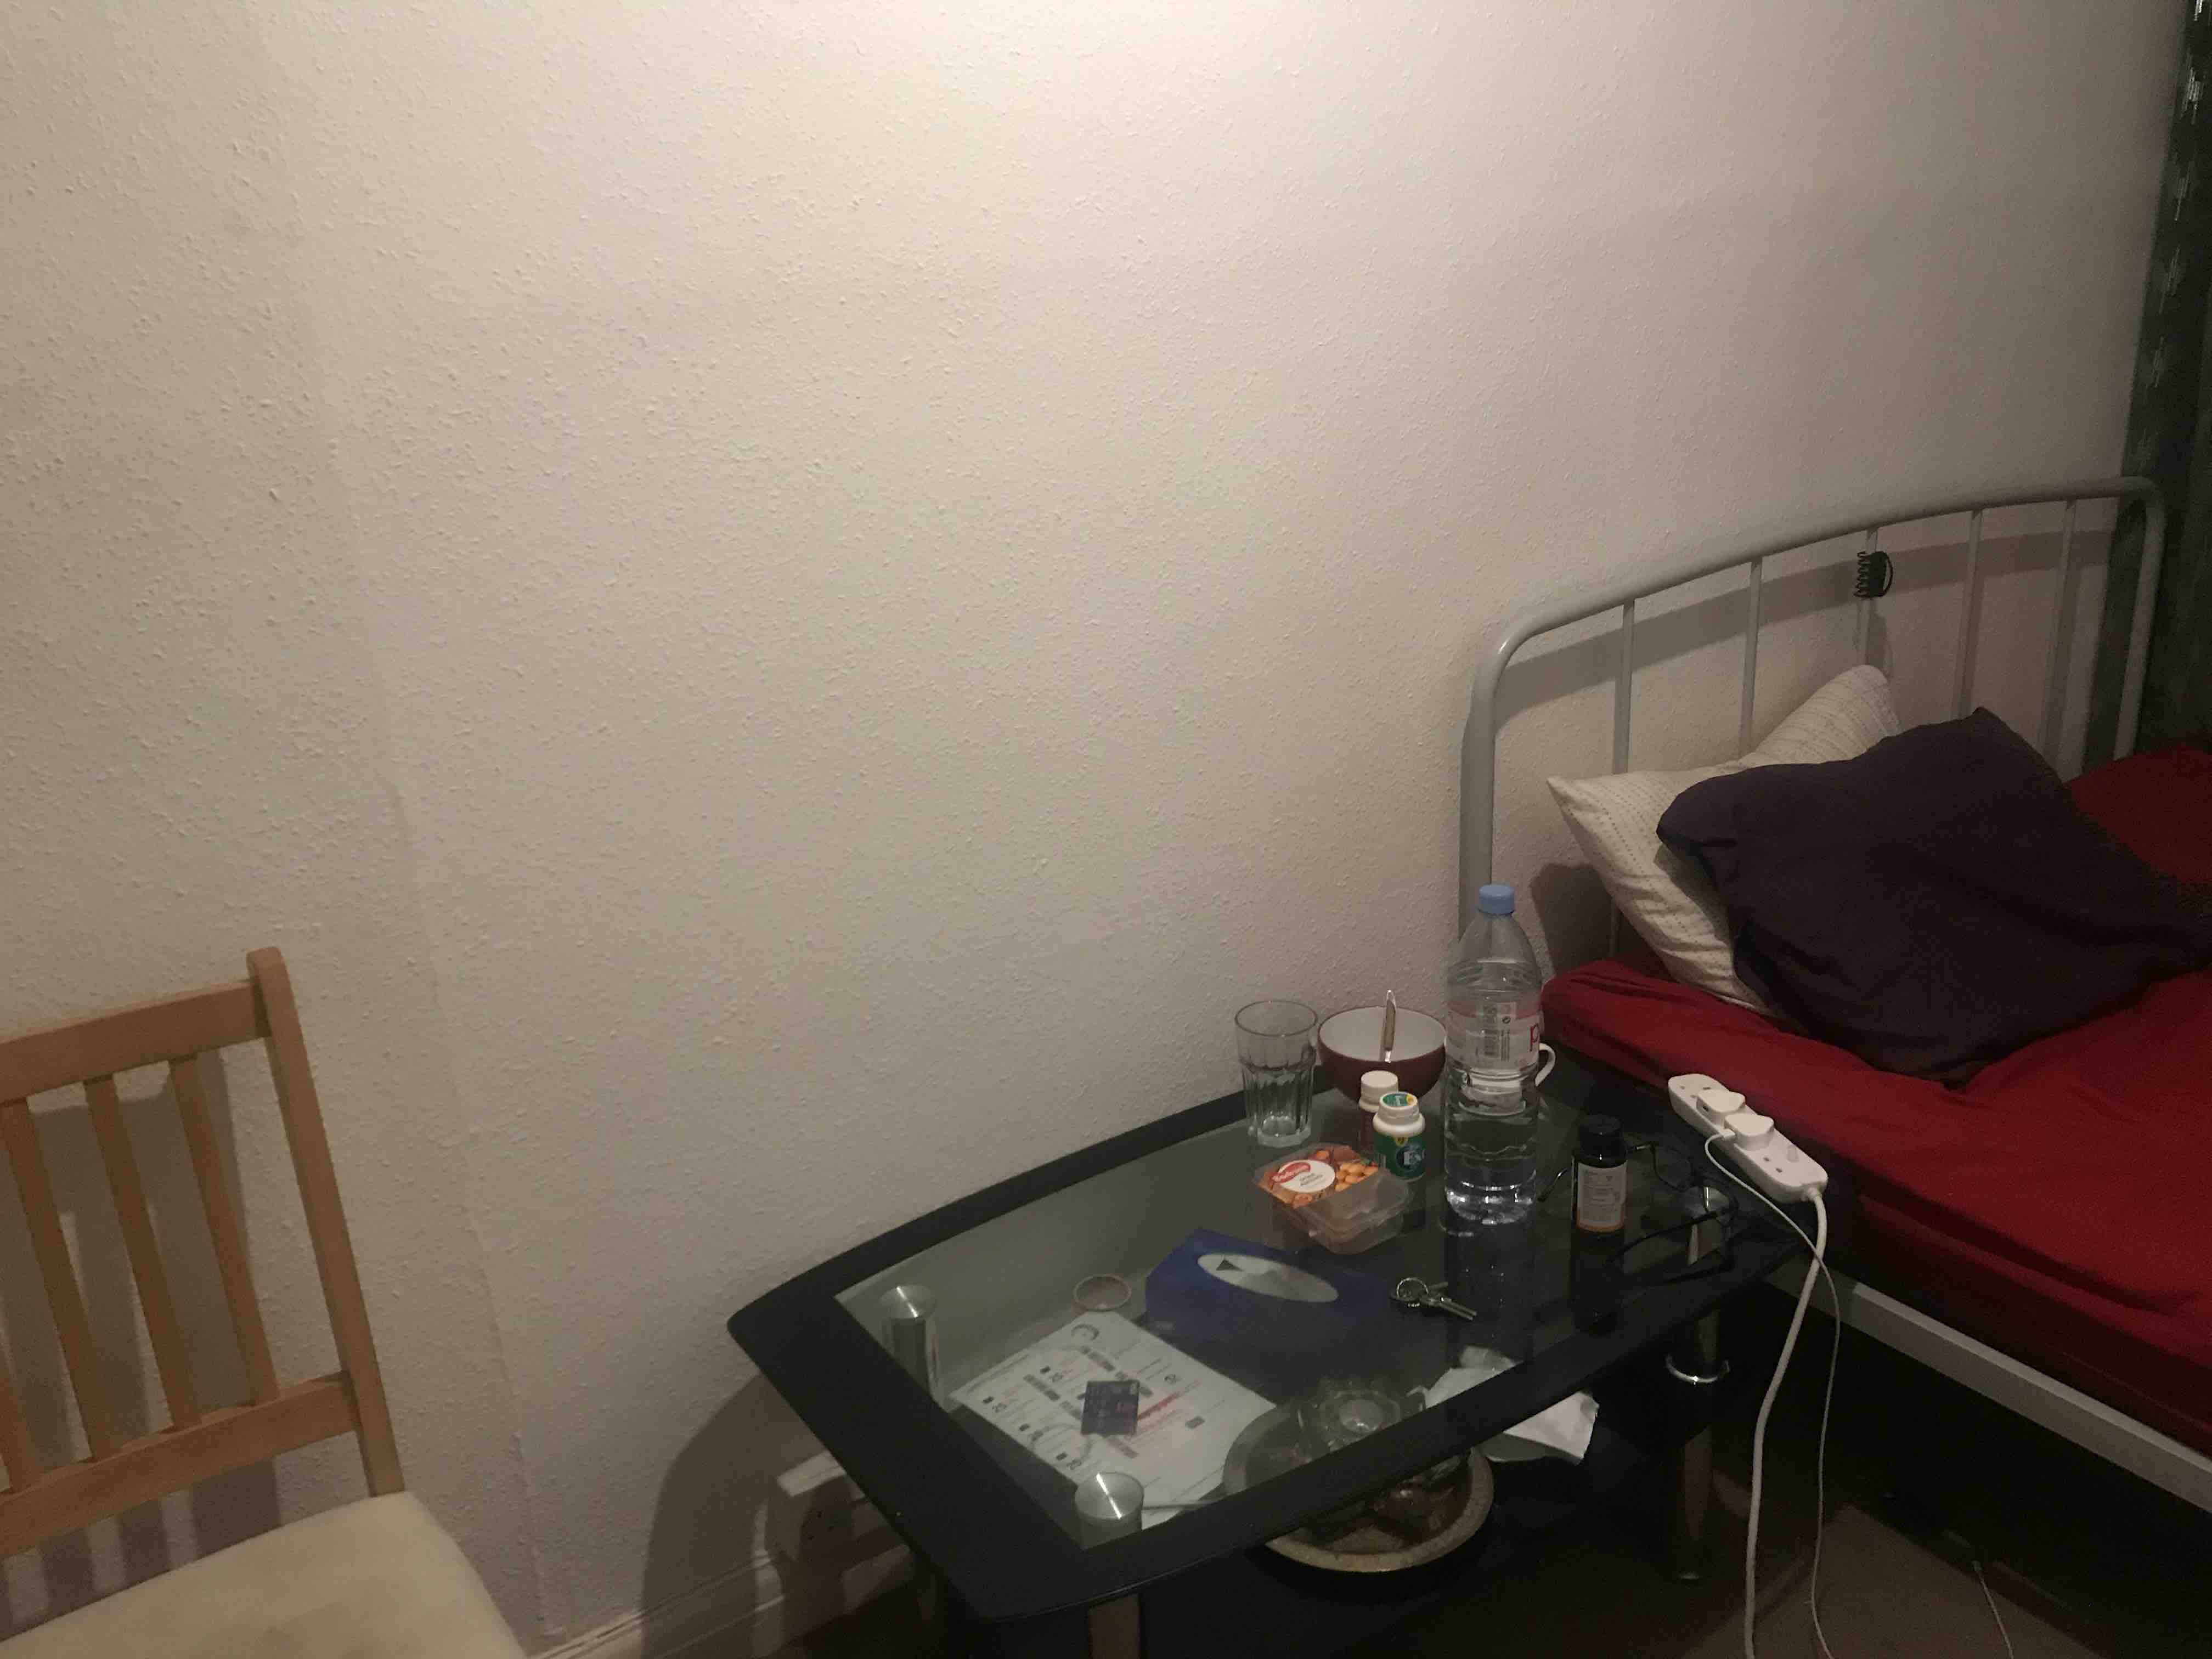 2 rooms in West Barnes, New Malden, KT36JF RoomsLocal image